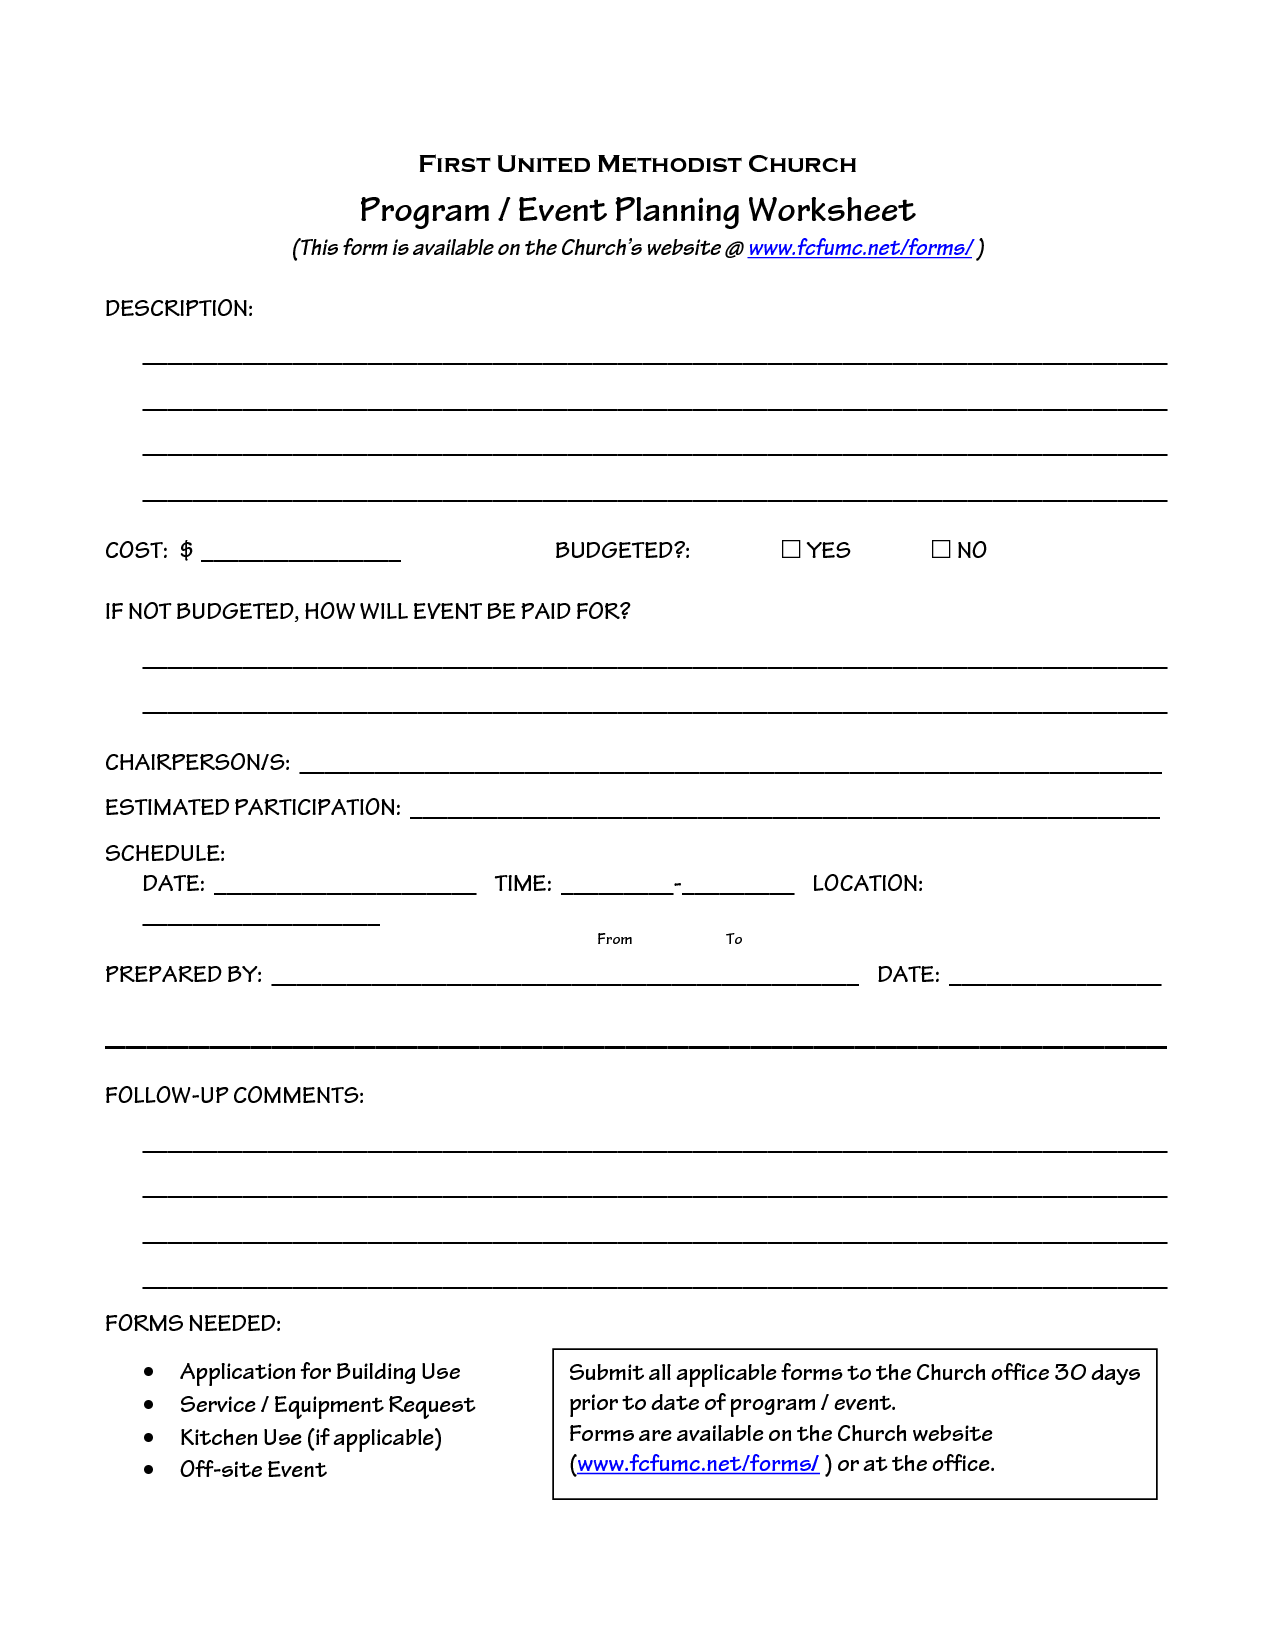 Worksheets Event Planning Worksheets event planning template for the taking halloween treat bag church worksheet organize it